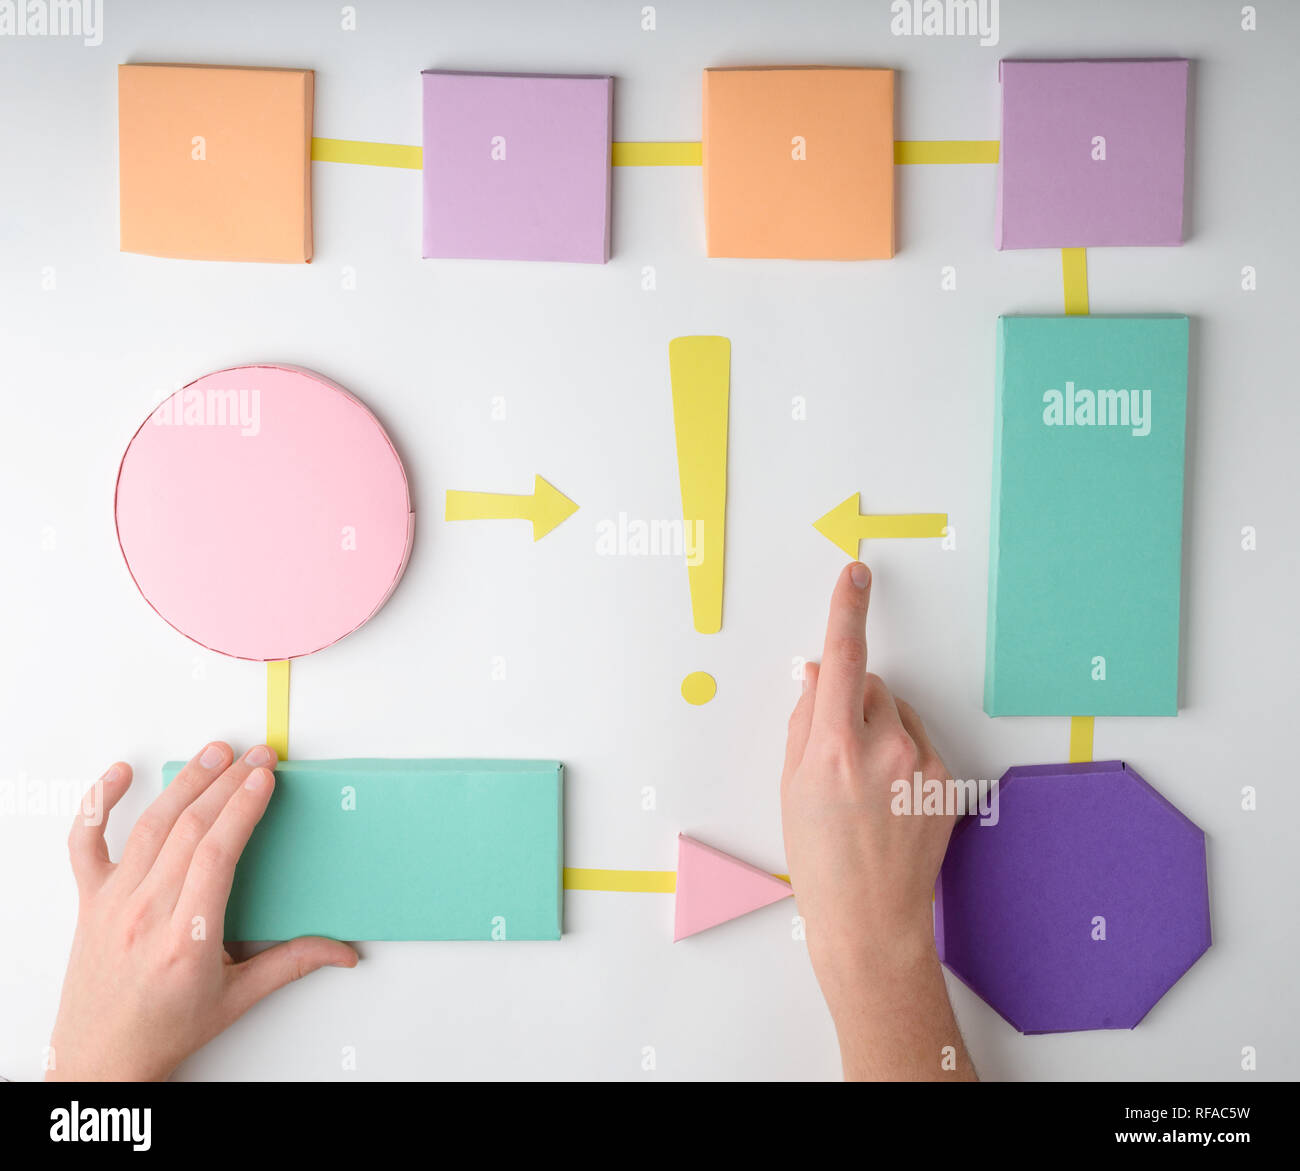 hand making a paper flowchart - stock image